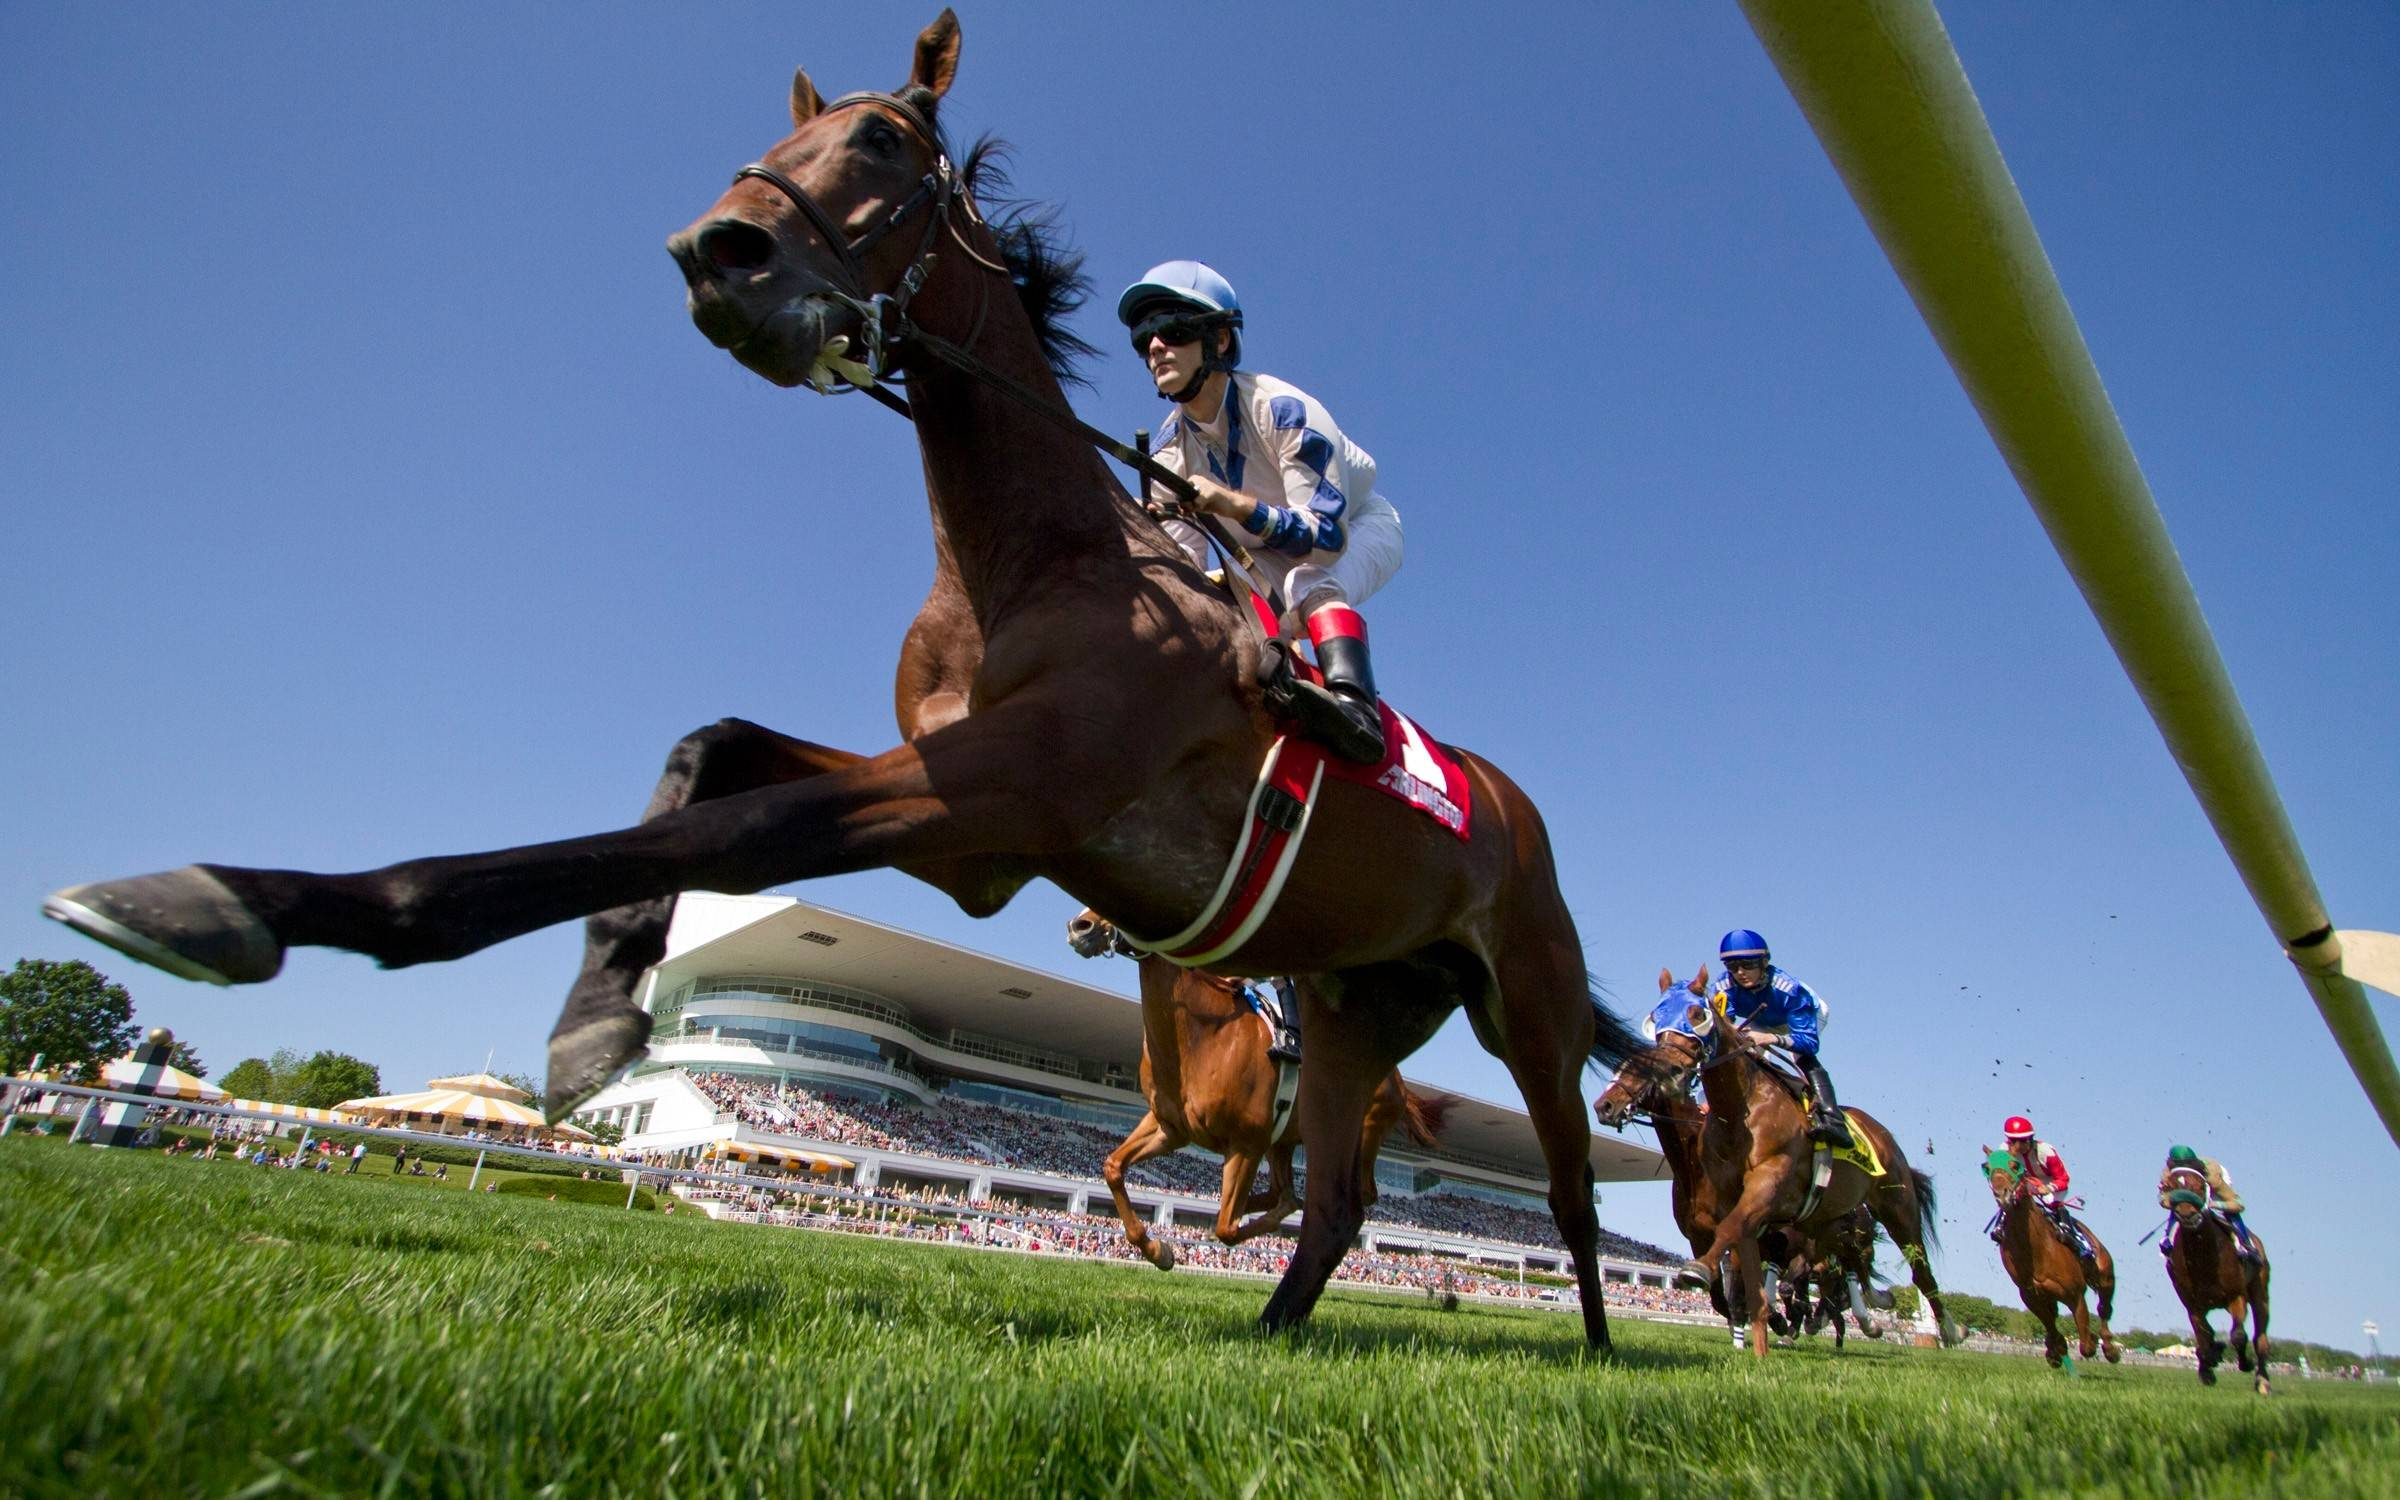 Arlington International Racecourse opens its 2014 season on Friday, May 2, which is followed up by Kentucky Derby Day on Saturday, May 3.